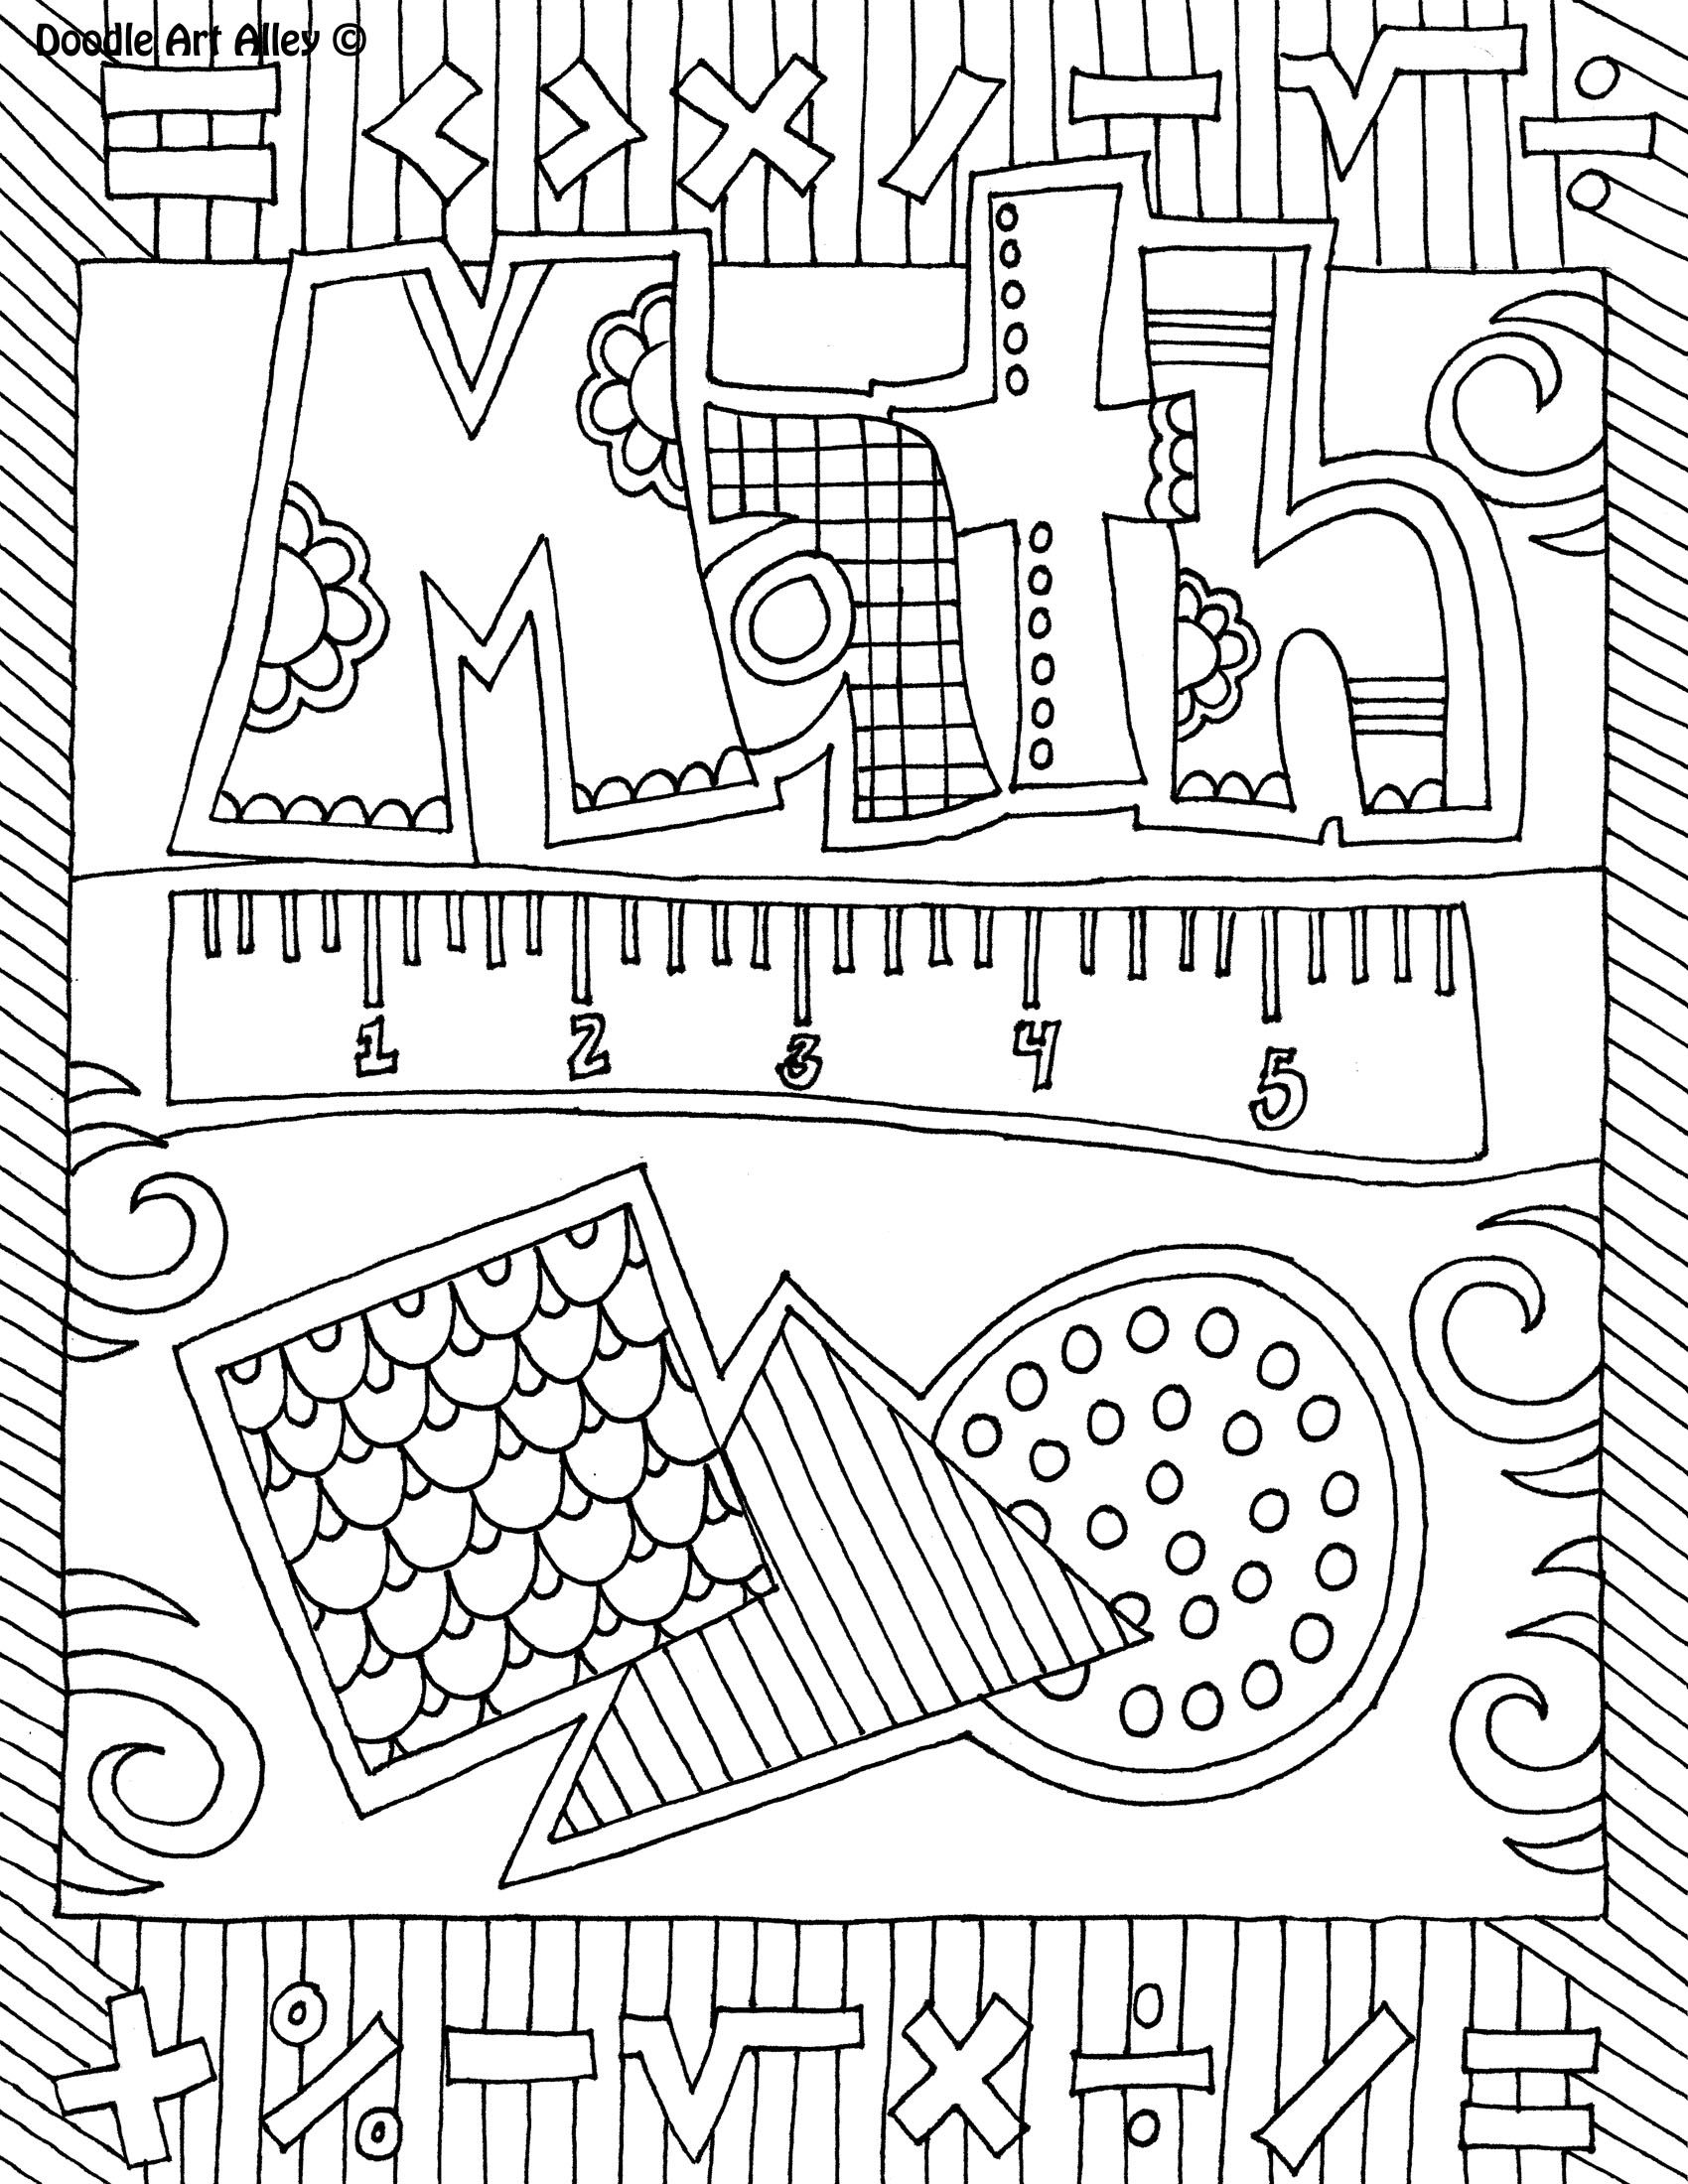 Coloring pages for elementary school - The Benefits Of Coloring These School Subject Coloring Pages Are Endless